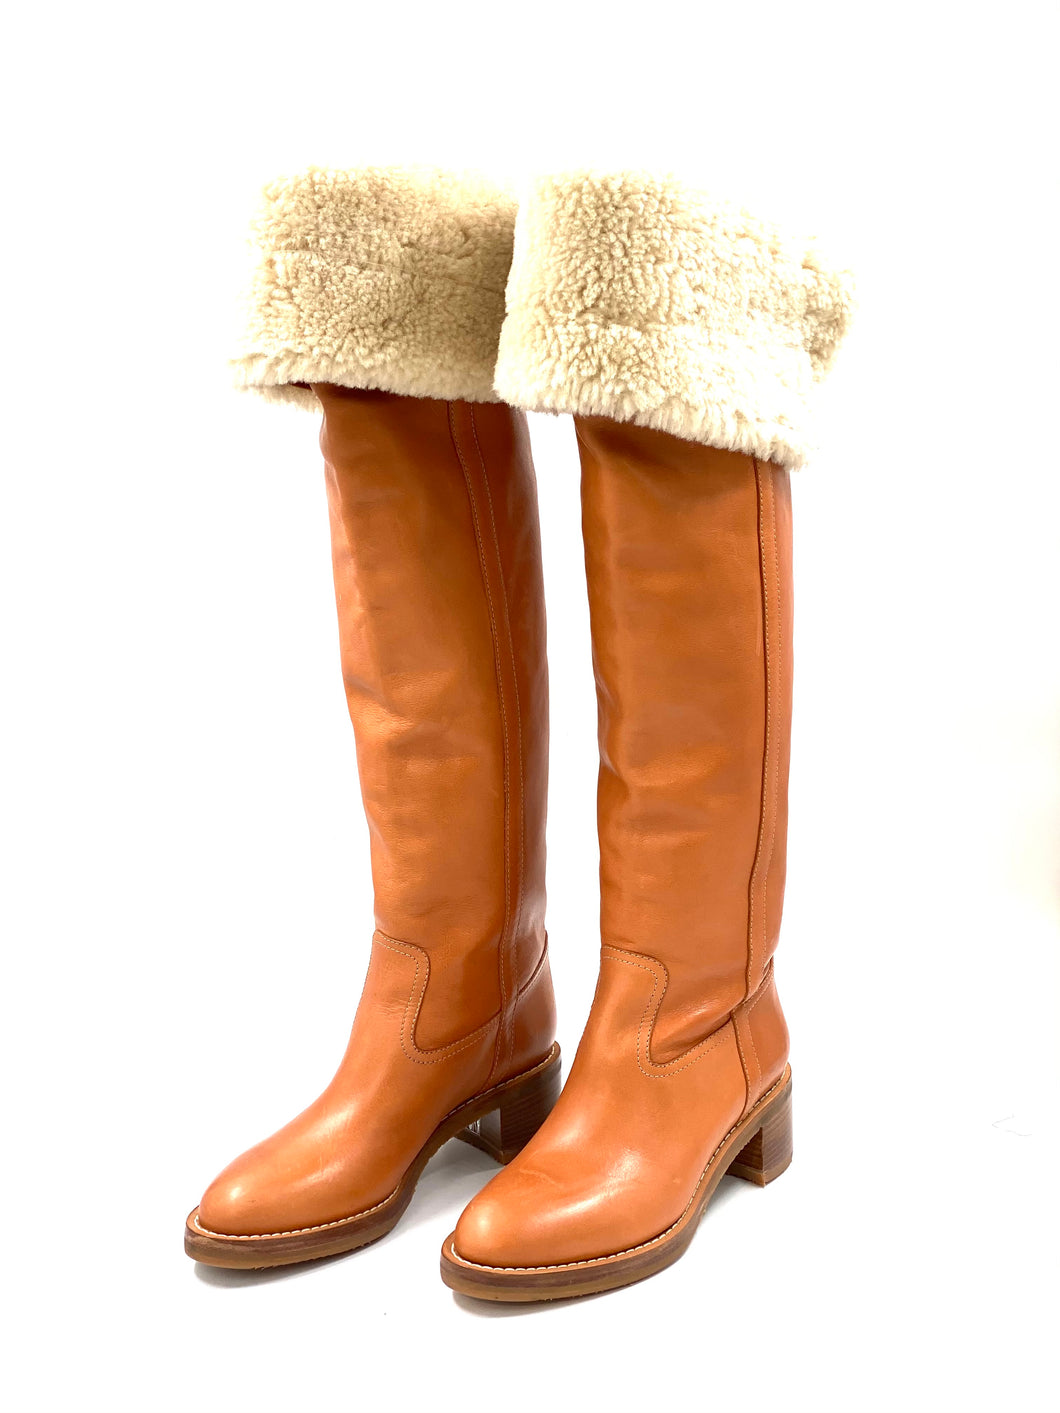 Celine Folco Thigh High Boot In Calfskin In Camel